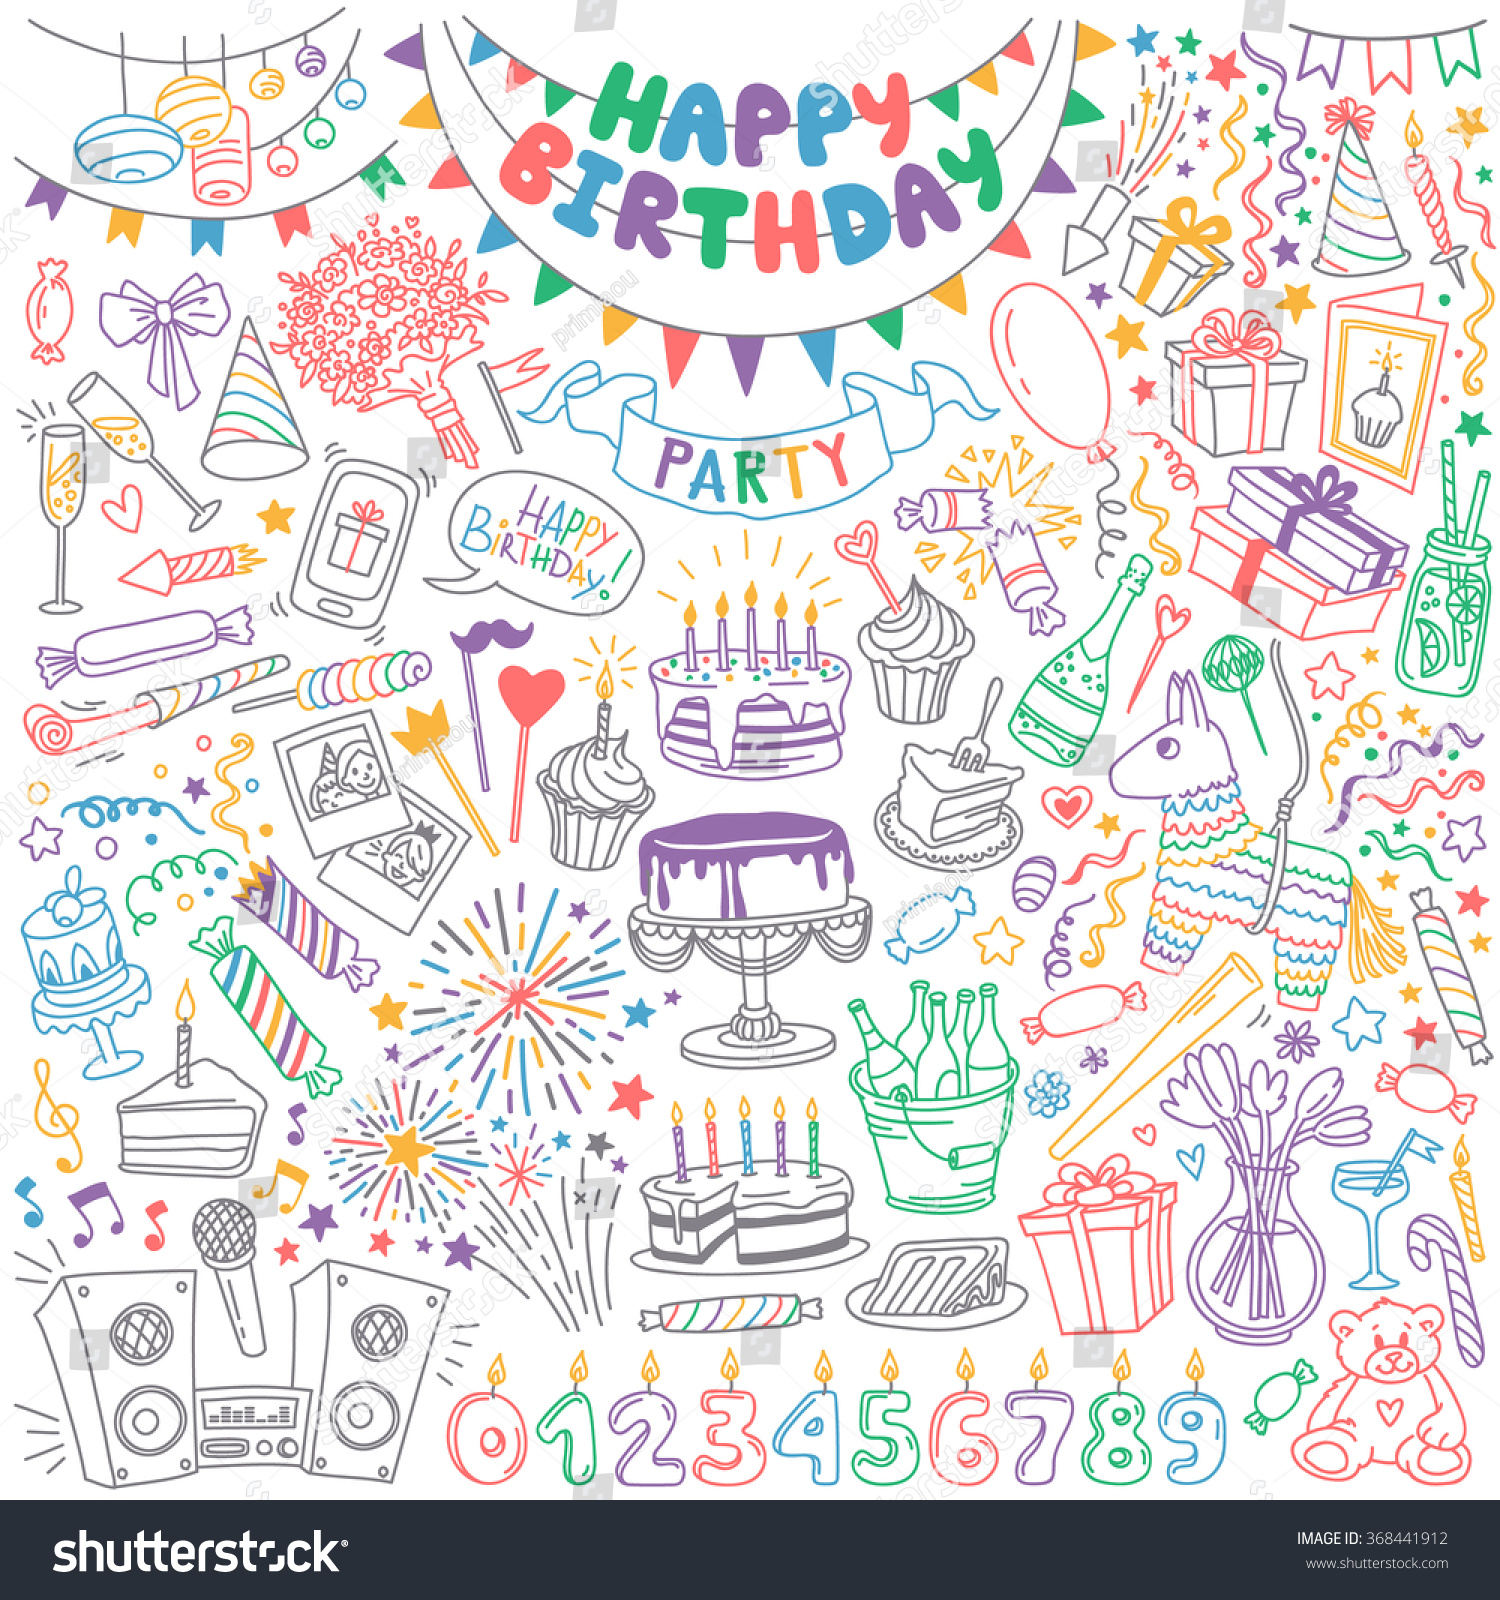 Happy Birthday Hand Drawn Set Party Decoration Gift Box Cake With Candles